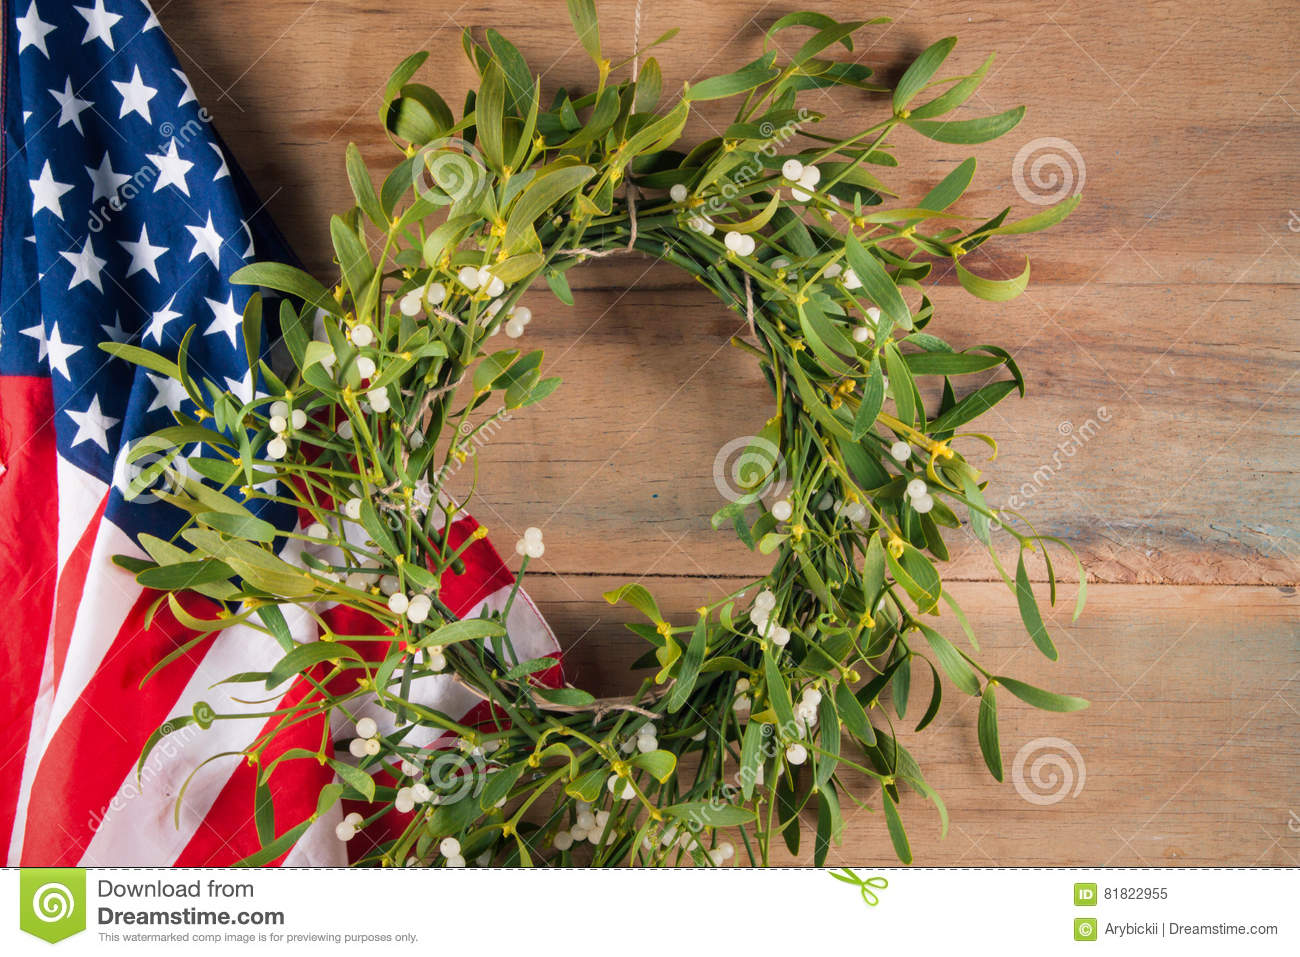 Gui et drapeau am ricain d coration de no l image stock - Site americain decoration noel ...